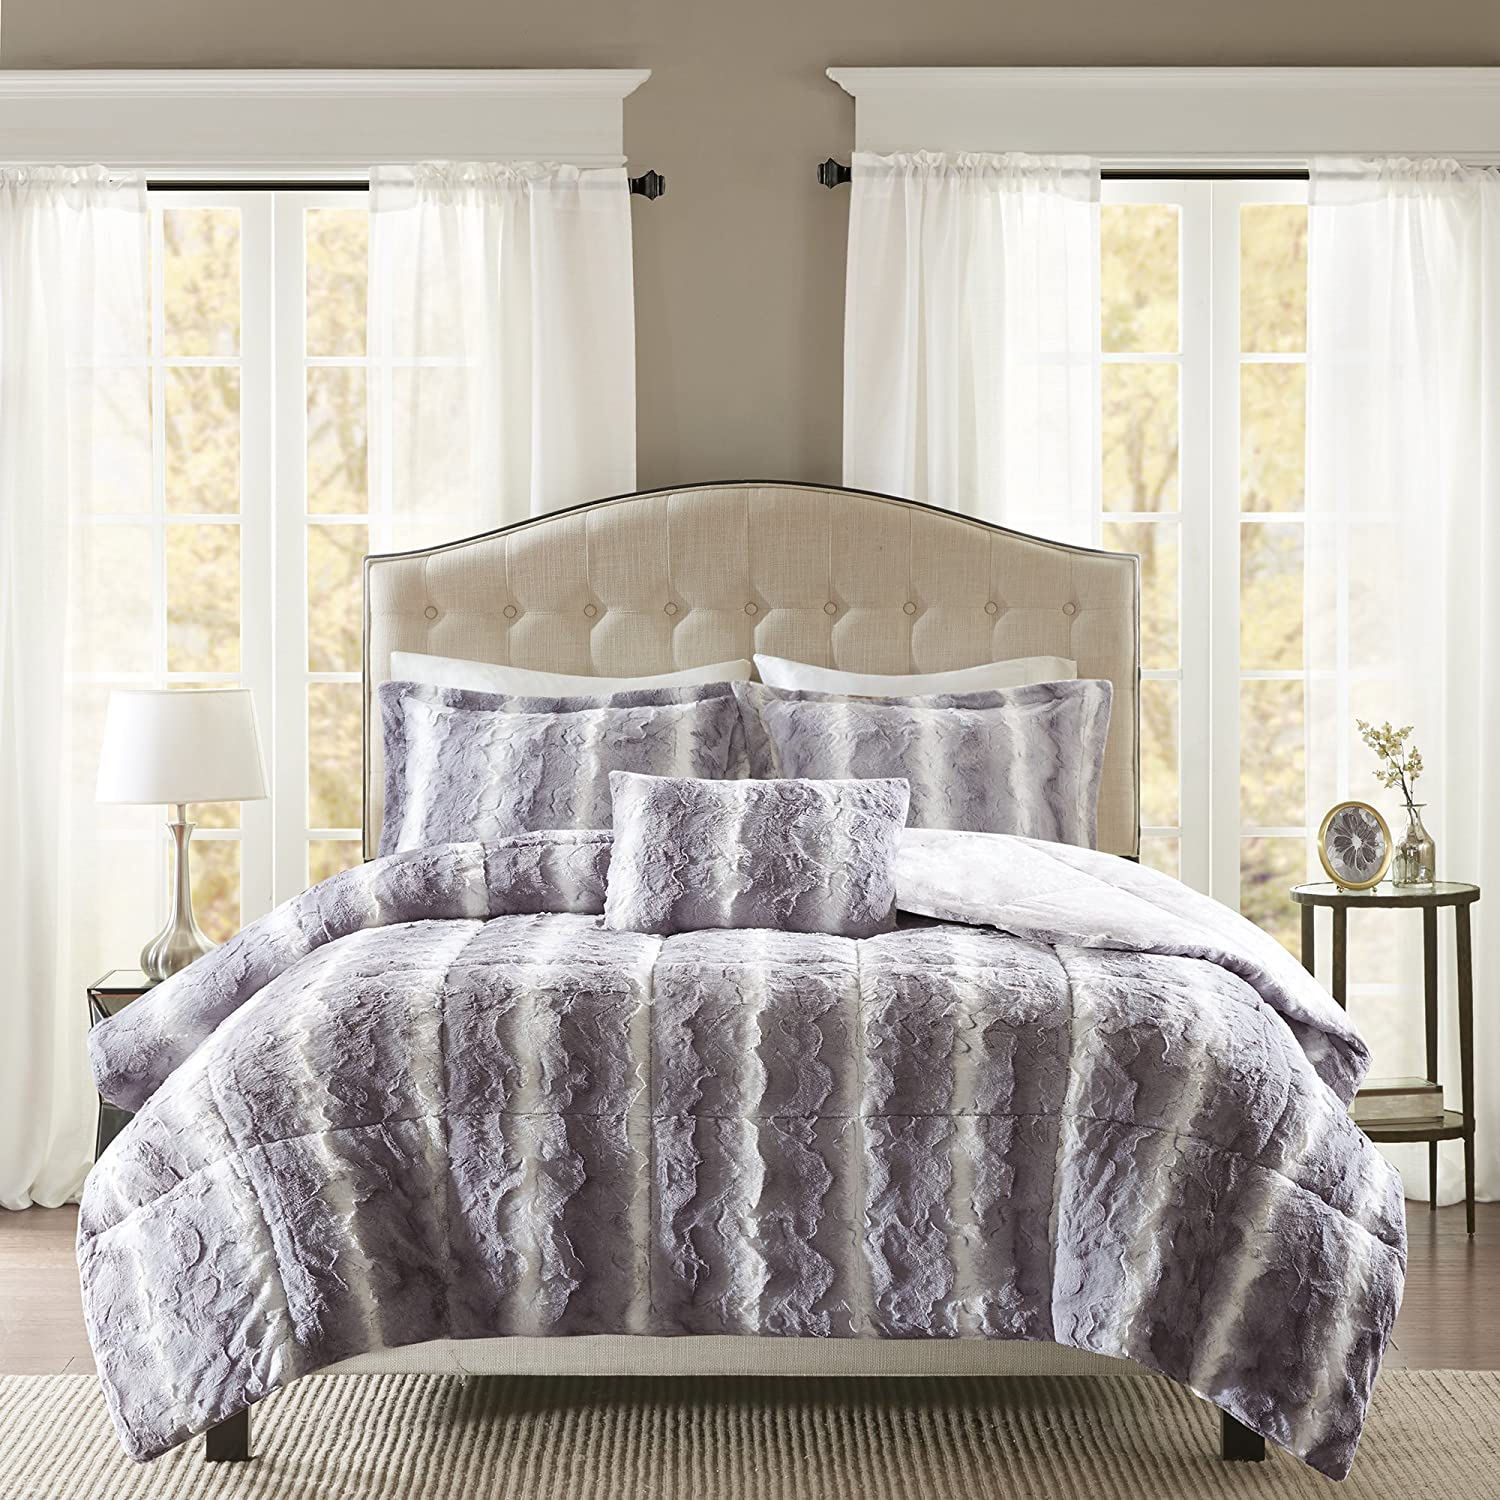 geneva today shipping pine bedding comforter bath fur product overstock faux marselle canopy madison set free park